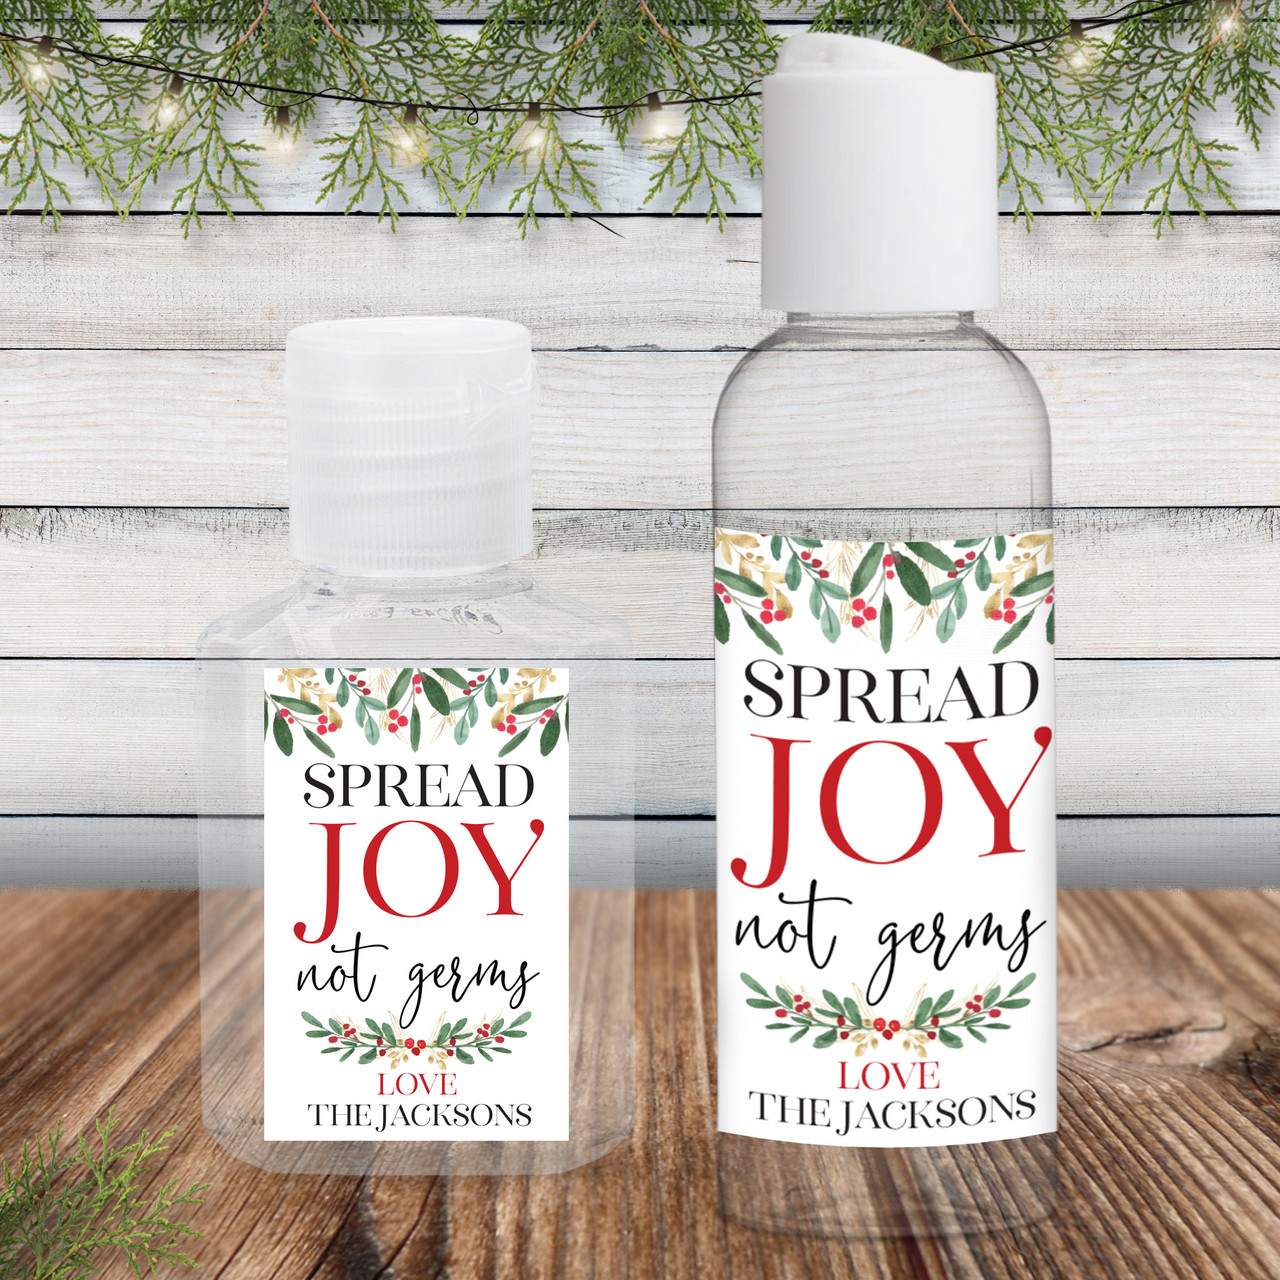 Christmas Party Favor Spread Joy not germs Hand Sanitizer Label 20 Christmas Hand Sanitizer Sticker